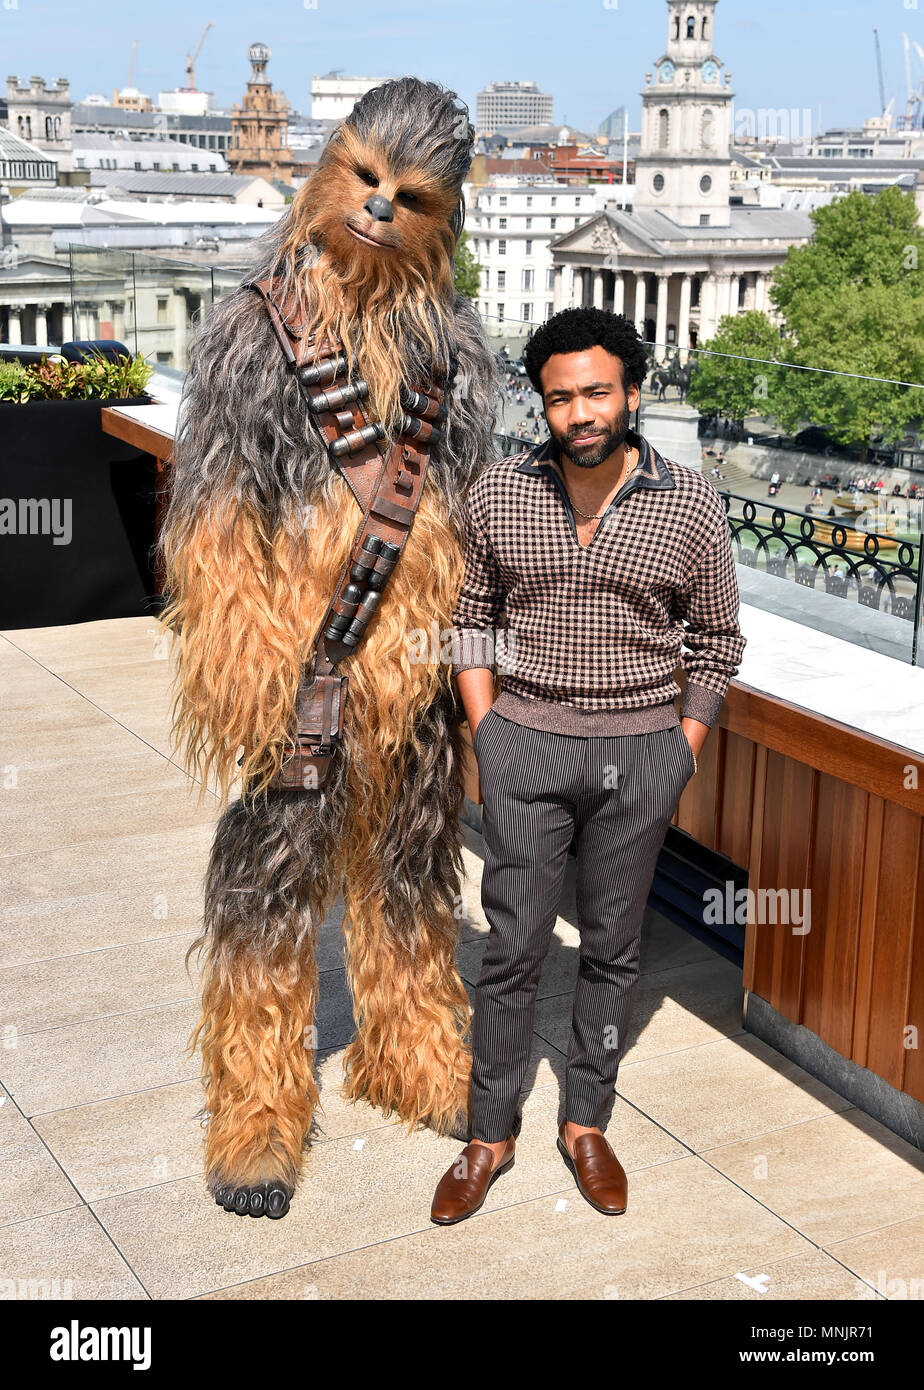 Donald Glover and Chewbacca attending the photocall for Solo: A Star Wars Story at The Trafalgar St. James, London. - Stock Image